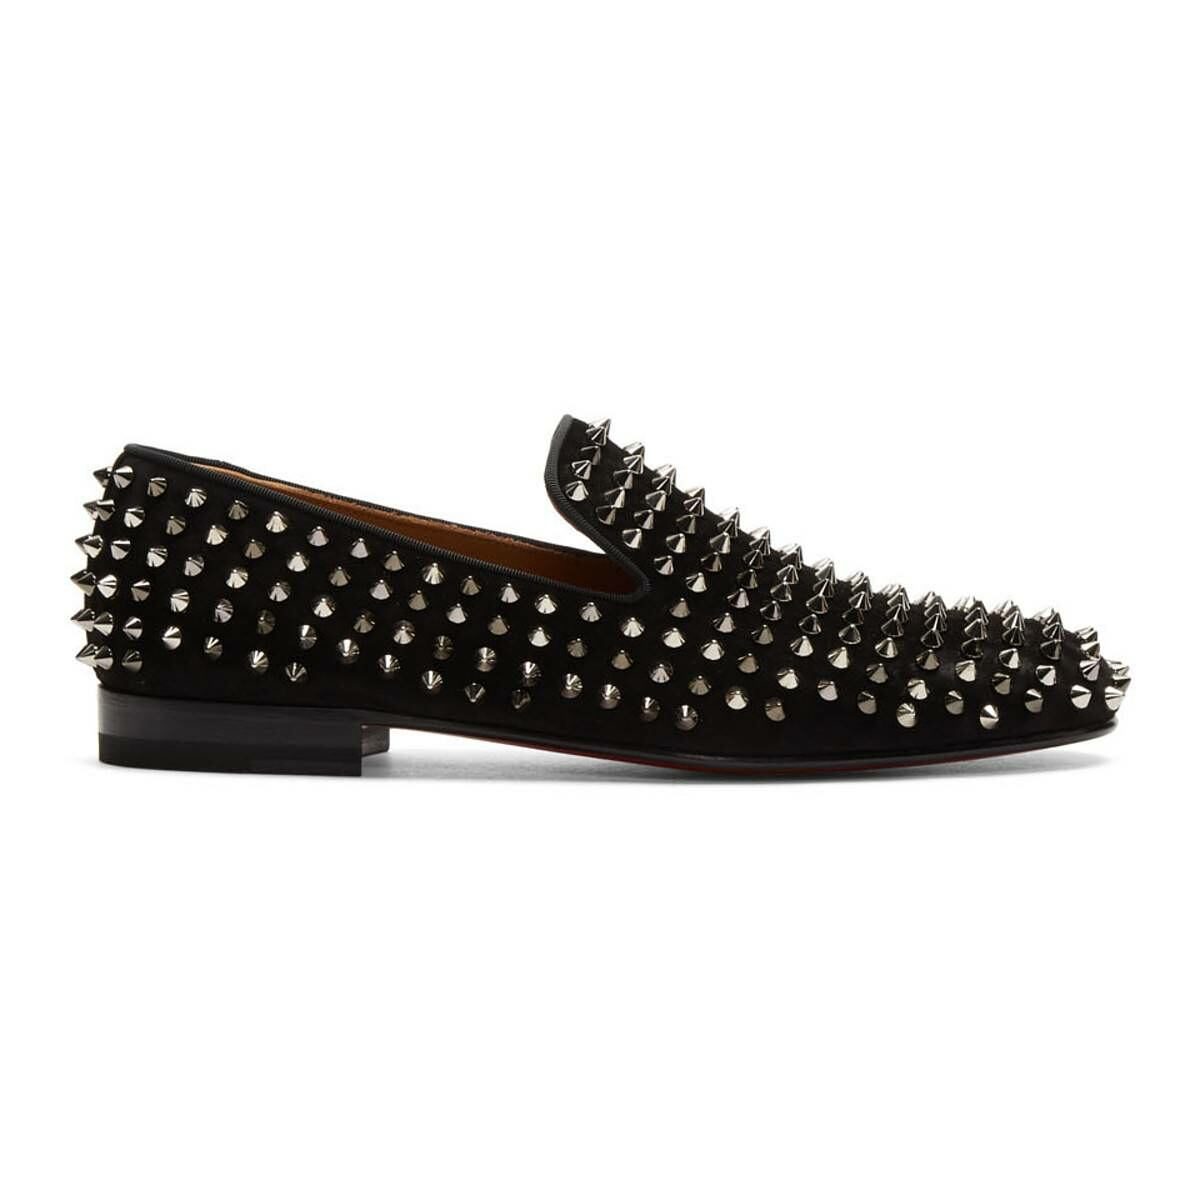 Christian Louboutin Black Suede Rollerboy Spikes Loafers Ssense USA MEN Men SHOES Mens LOAFERS